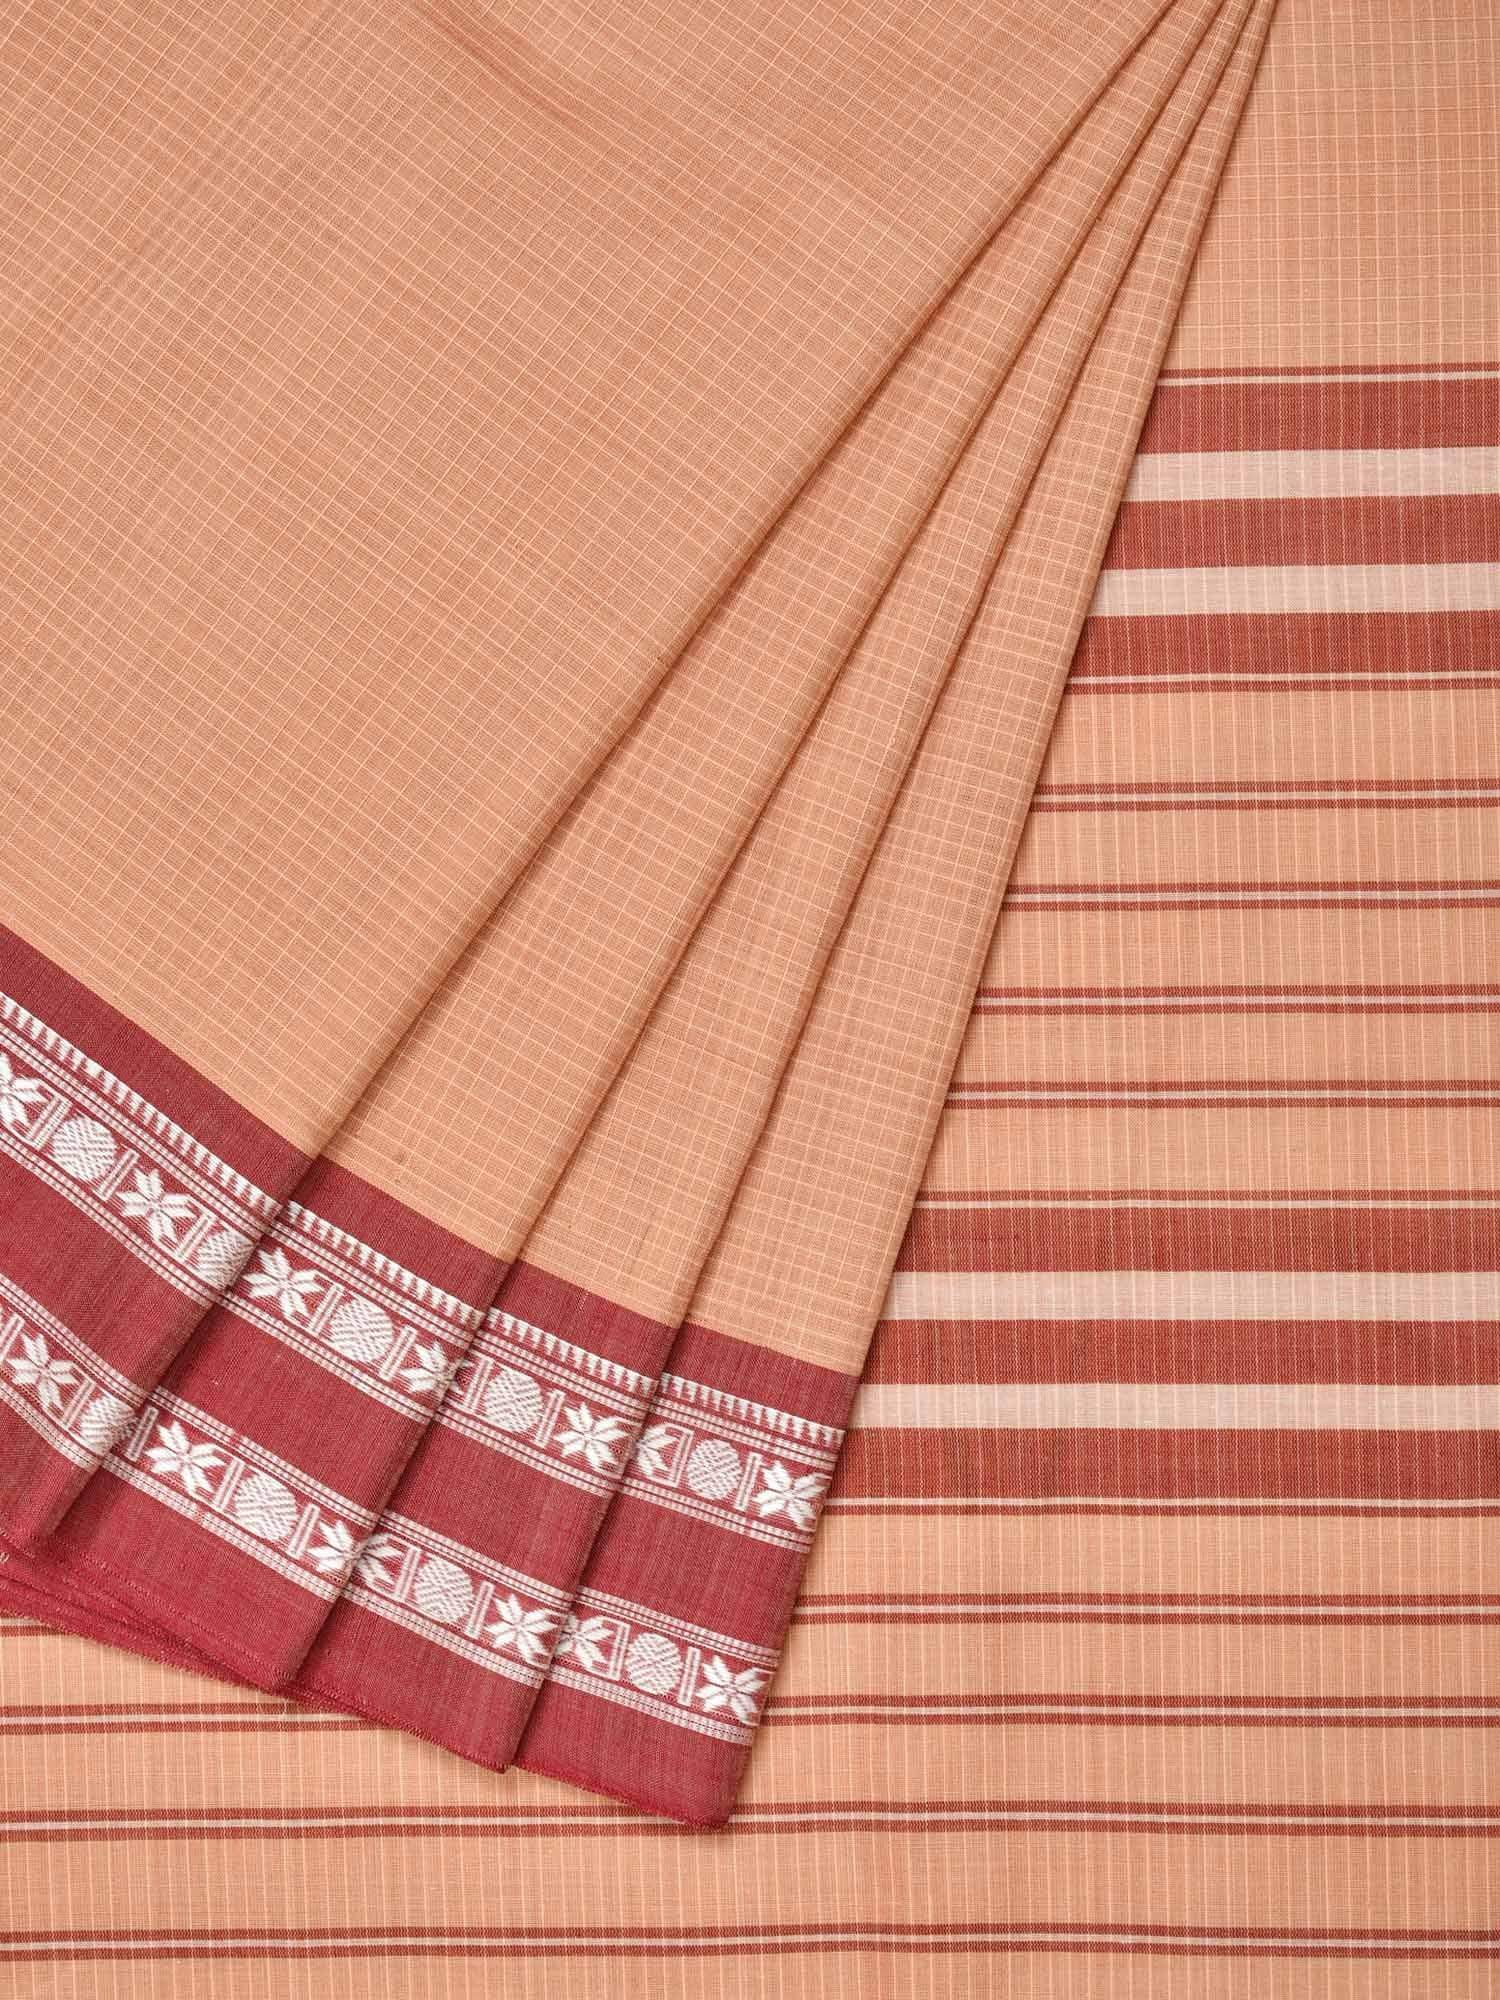 Cream Narayanpet Cotton Handloom Saree with Checks Design No Blouse np0223